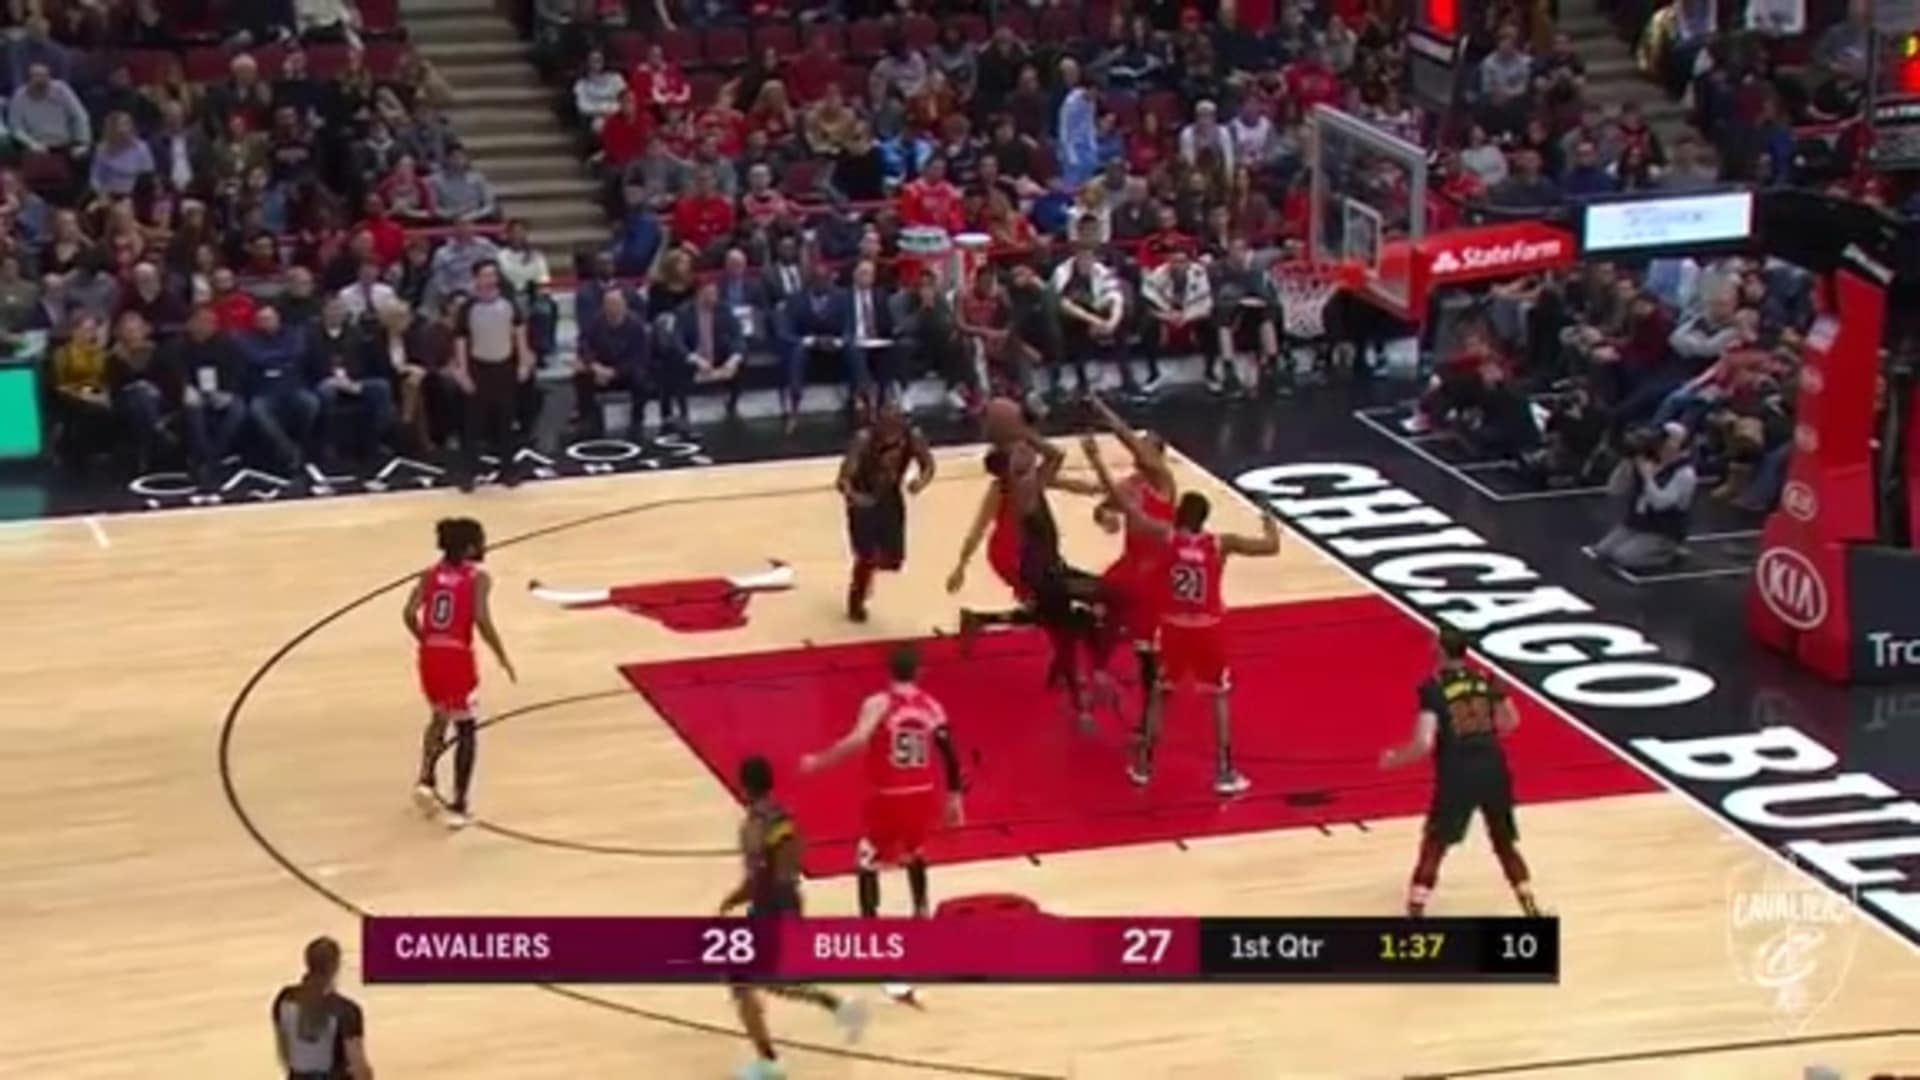 McKinnie Gets And-One To Go In the Paint